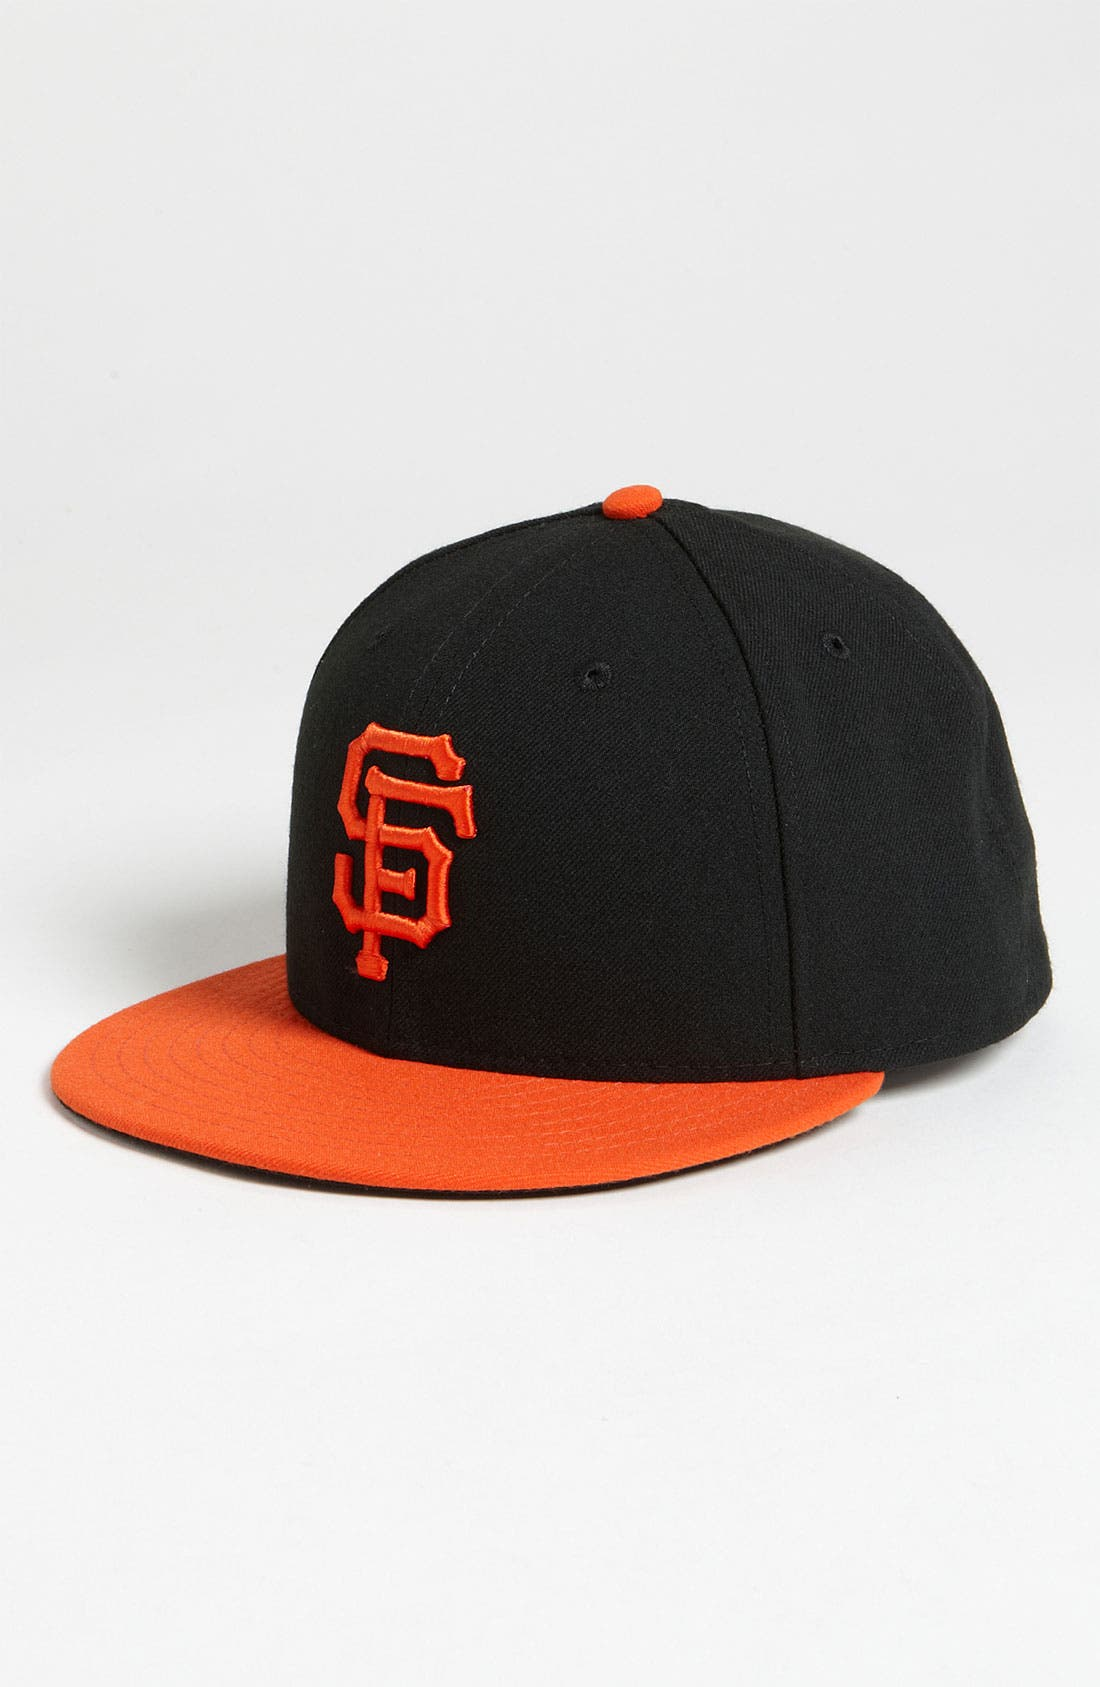 Main Image - New Era Cap 'San Francisco Giants' Baseball Cap